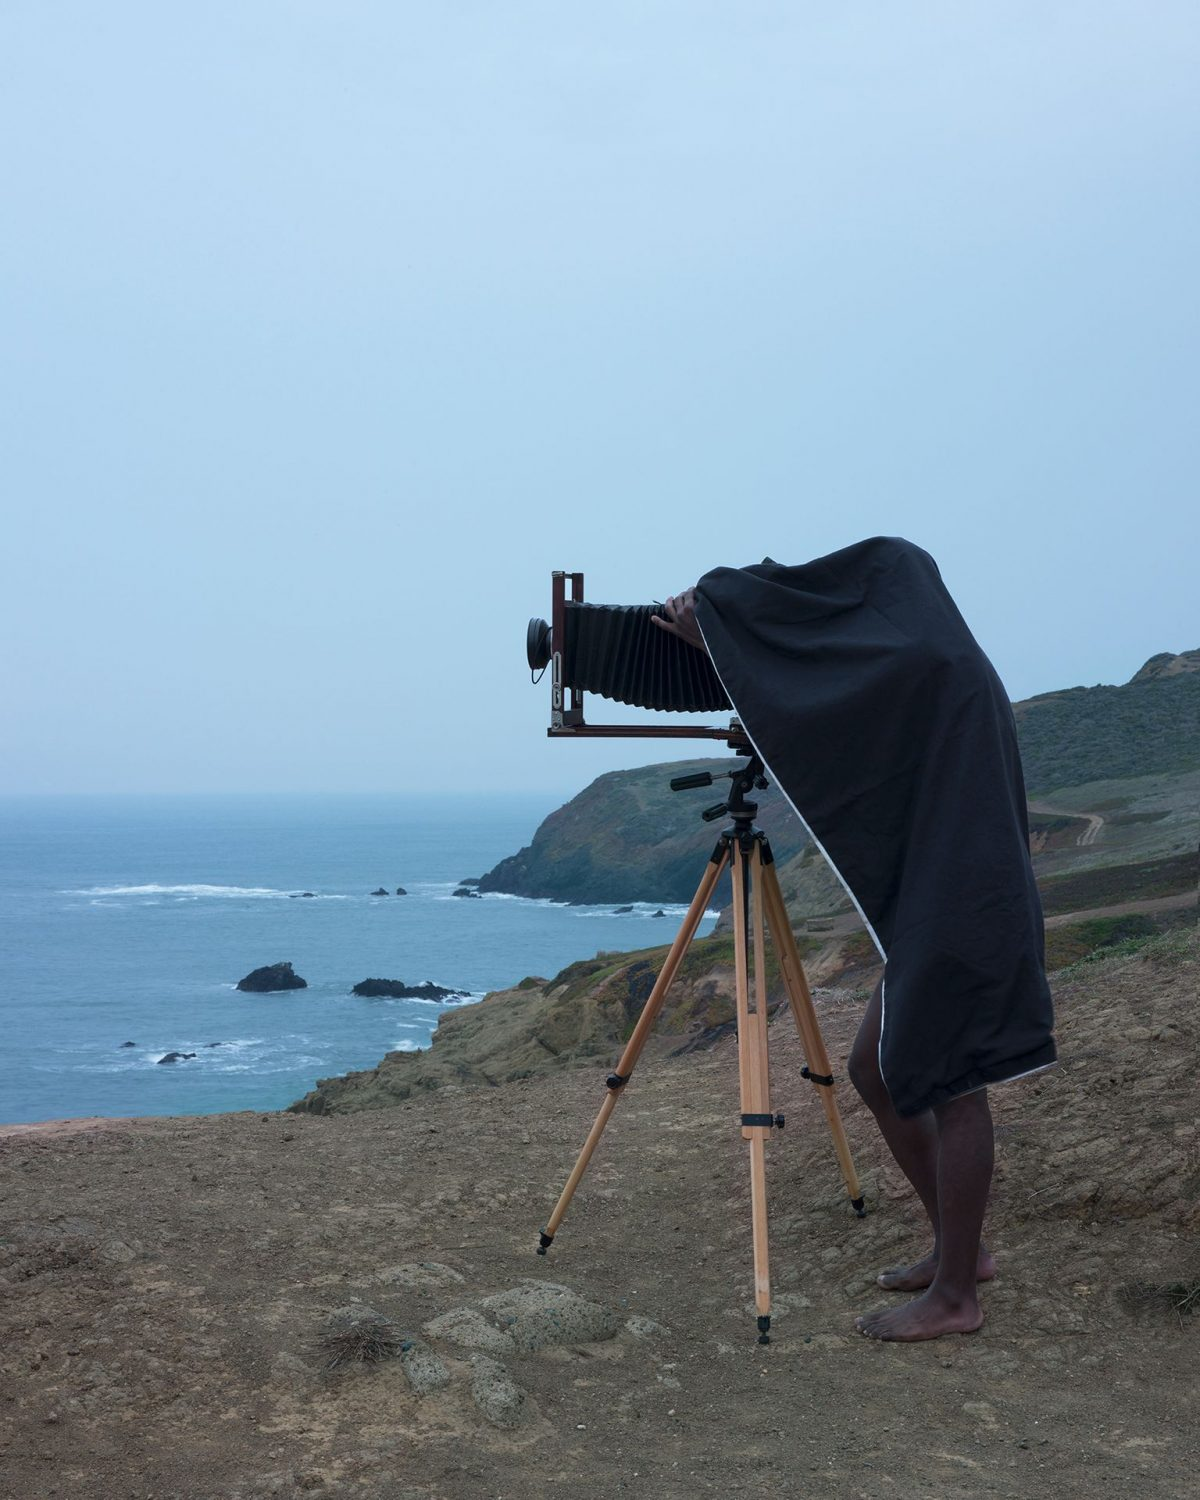 Image description: Double Vision (Record), Jonathan Calm, pigment print. A vertical rectangular photograph of man using a camera on a tripod near an oceanside cliff. The man is seen from the side, his camera pointed to the left. The camera has a large black bellows attached to a lens and stands on light-colored wooden tripod legs. The man is mostly concealed under a dark cloth with only his bare legs and the fingers of one hand visible. He is dark skinned and barefoot. He stands on rough, brown ground with cliffs and the ocean behind him. The upper half of the photo contains a pale blue sky.